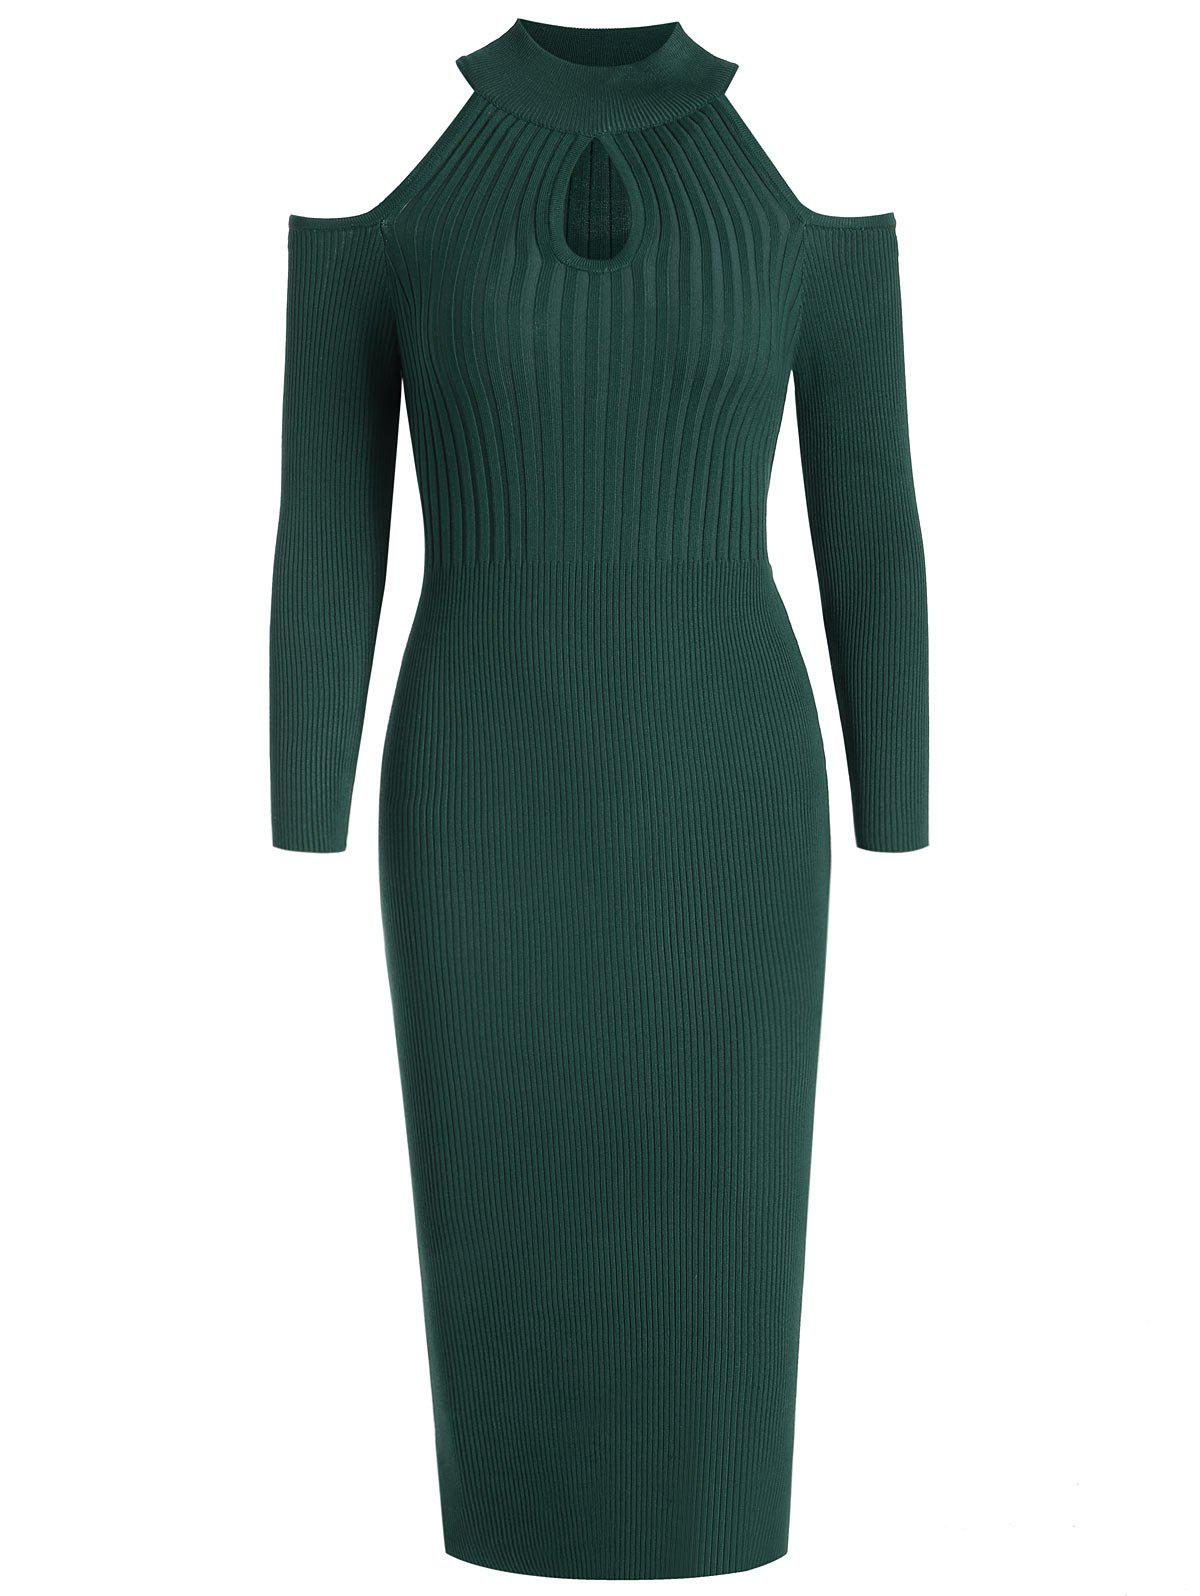 Shops Women's Stand Collar Dew Shoulder Long Sleeved Bodycon Dress